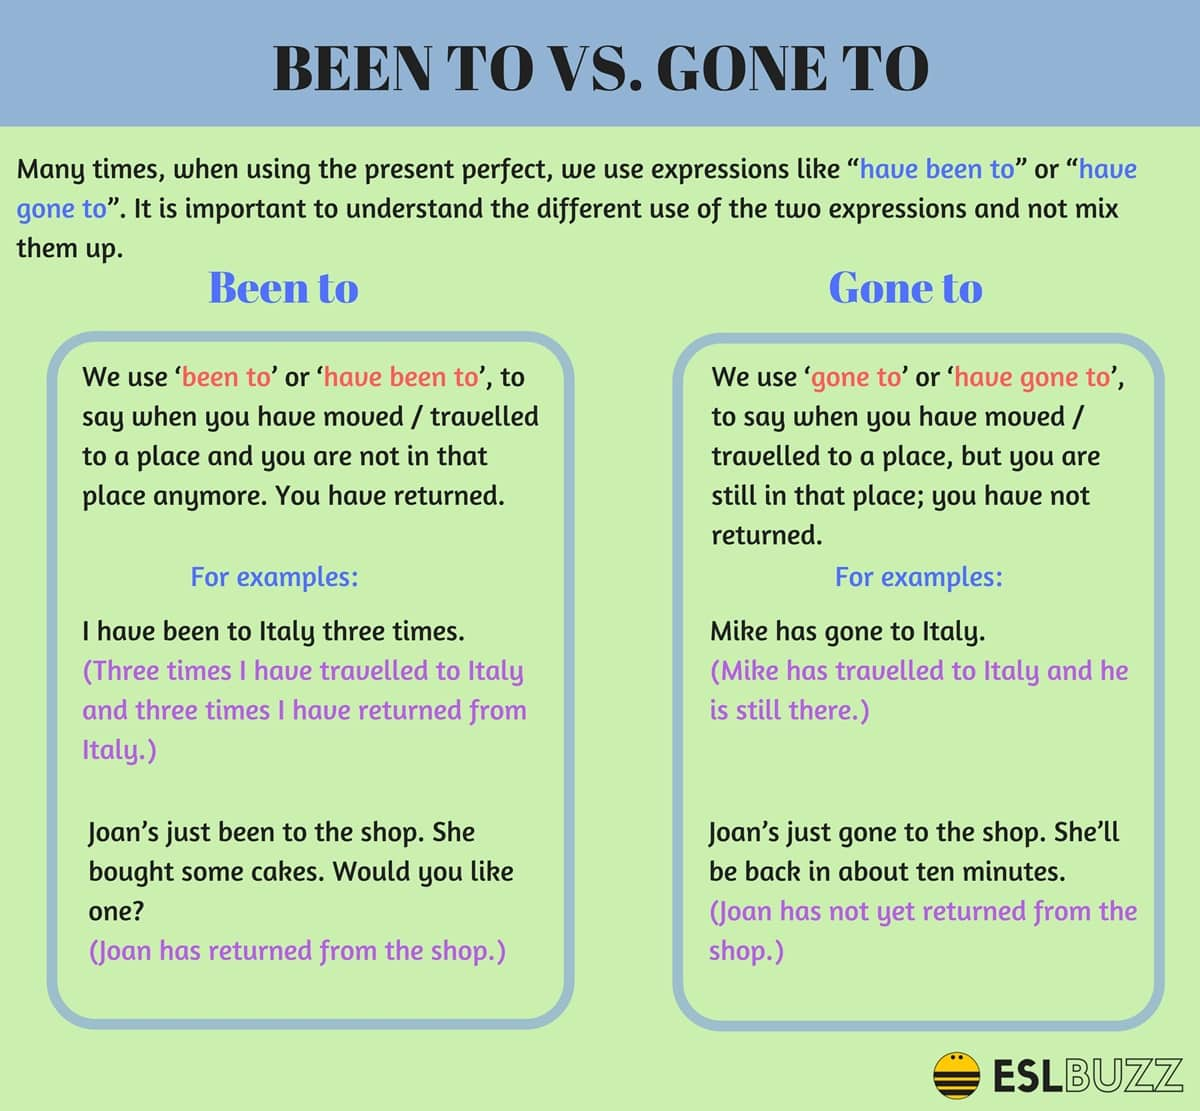 Difference between BEEN TO and GONE TO